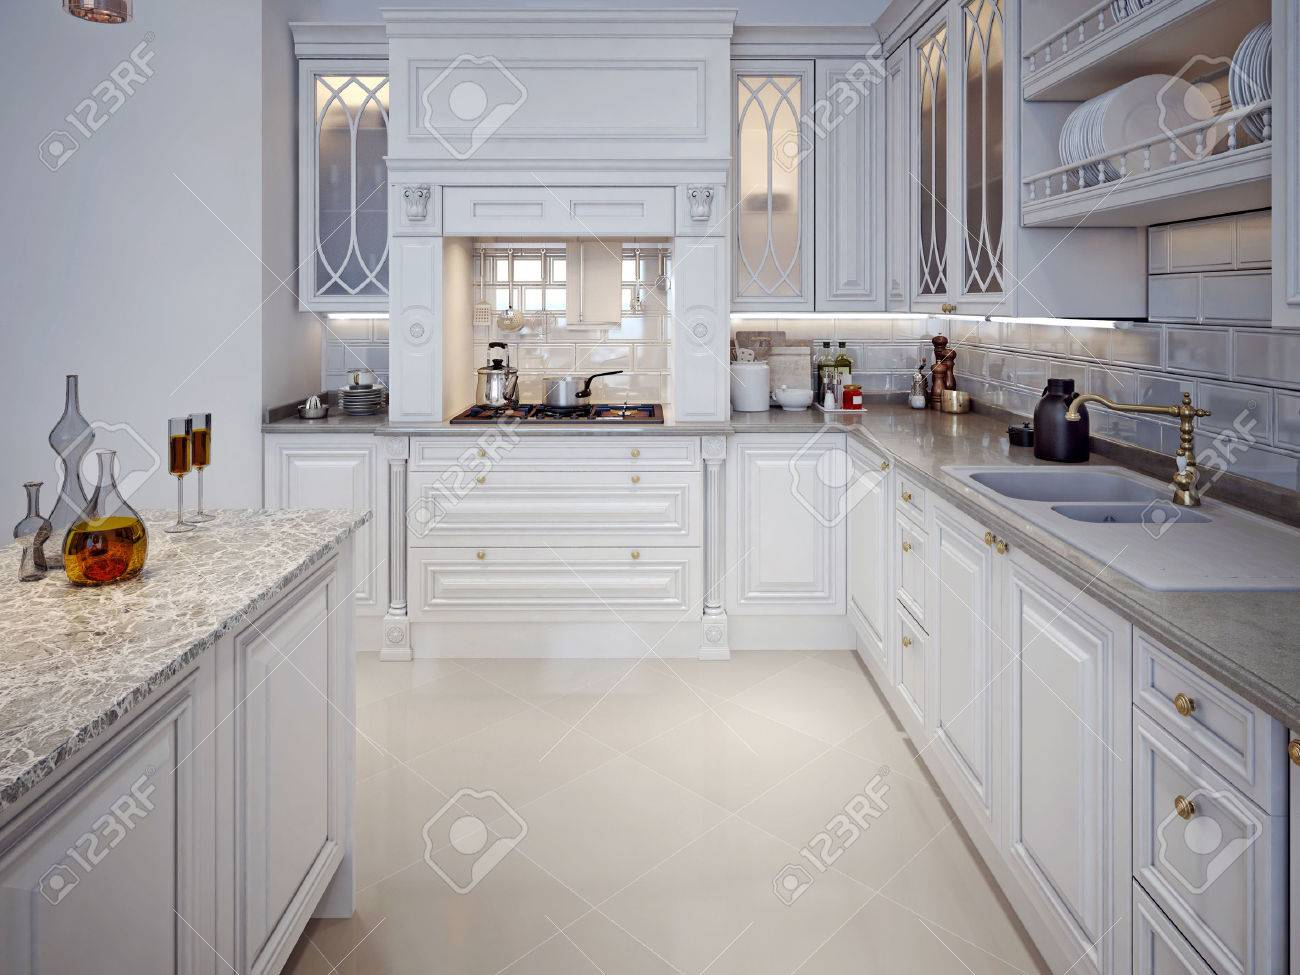 Luxury White Kitchen With A Classic Style. 3D Render. Stock Photo ...